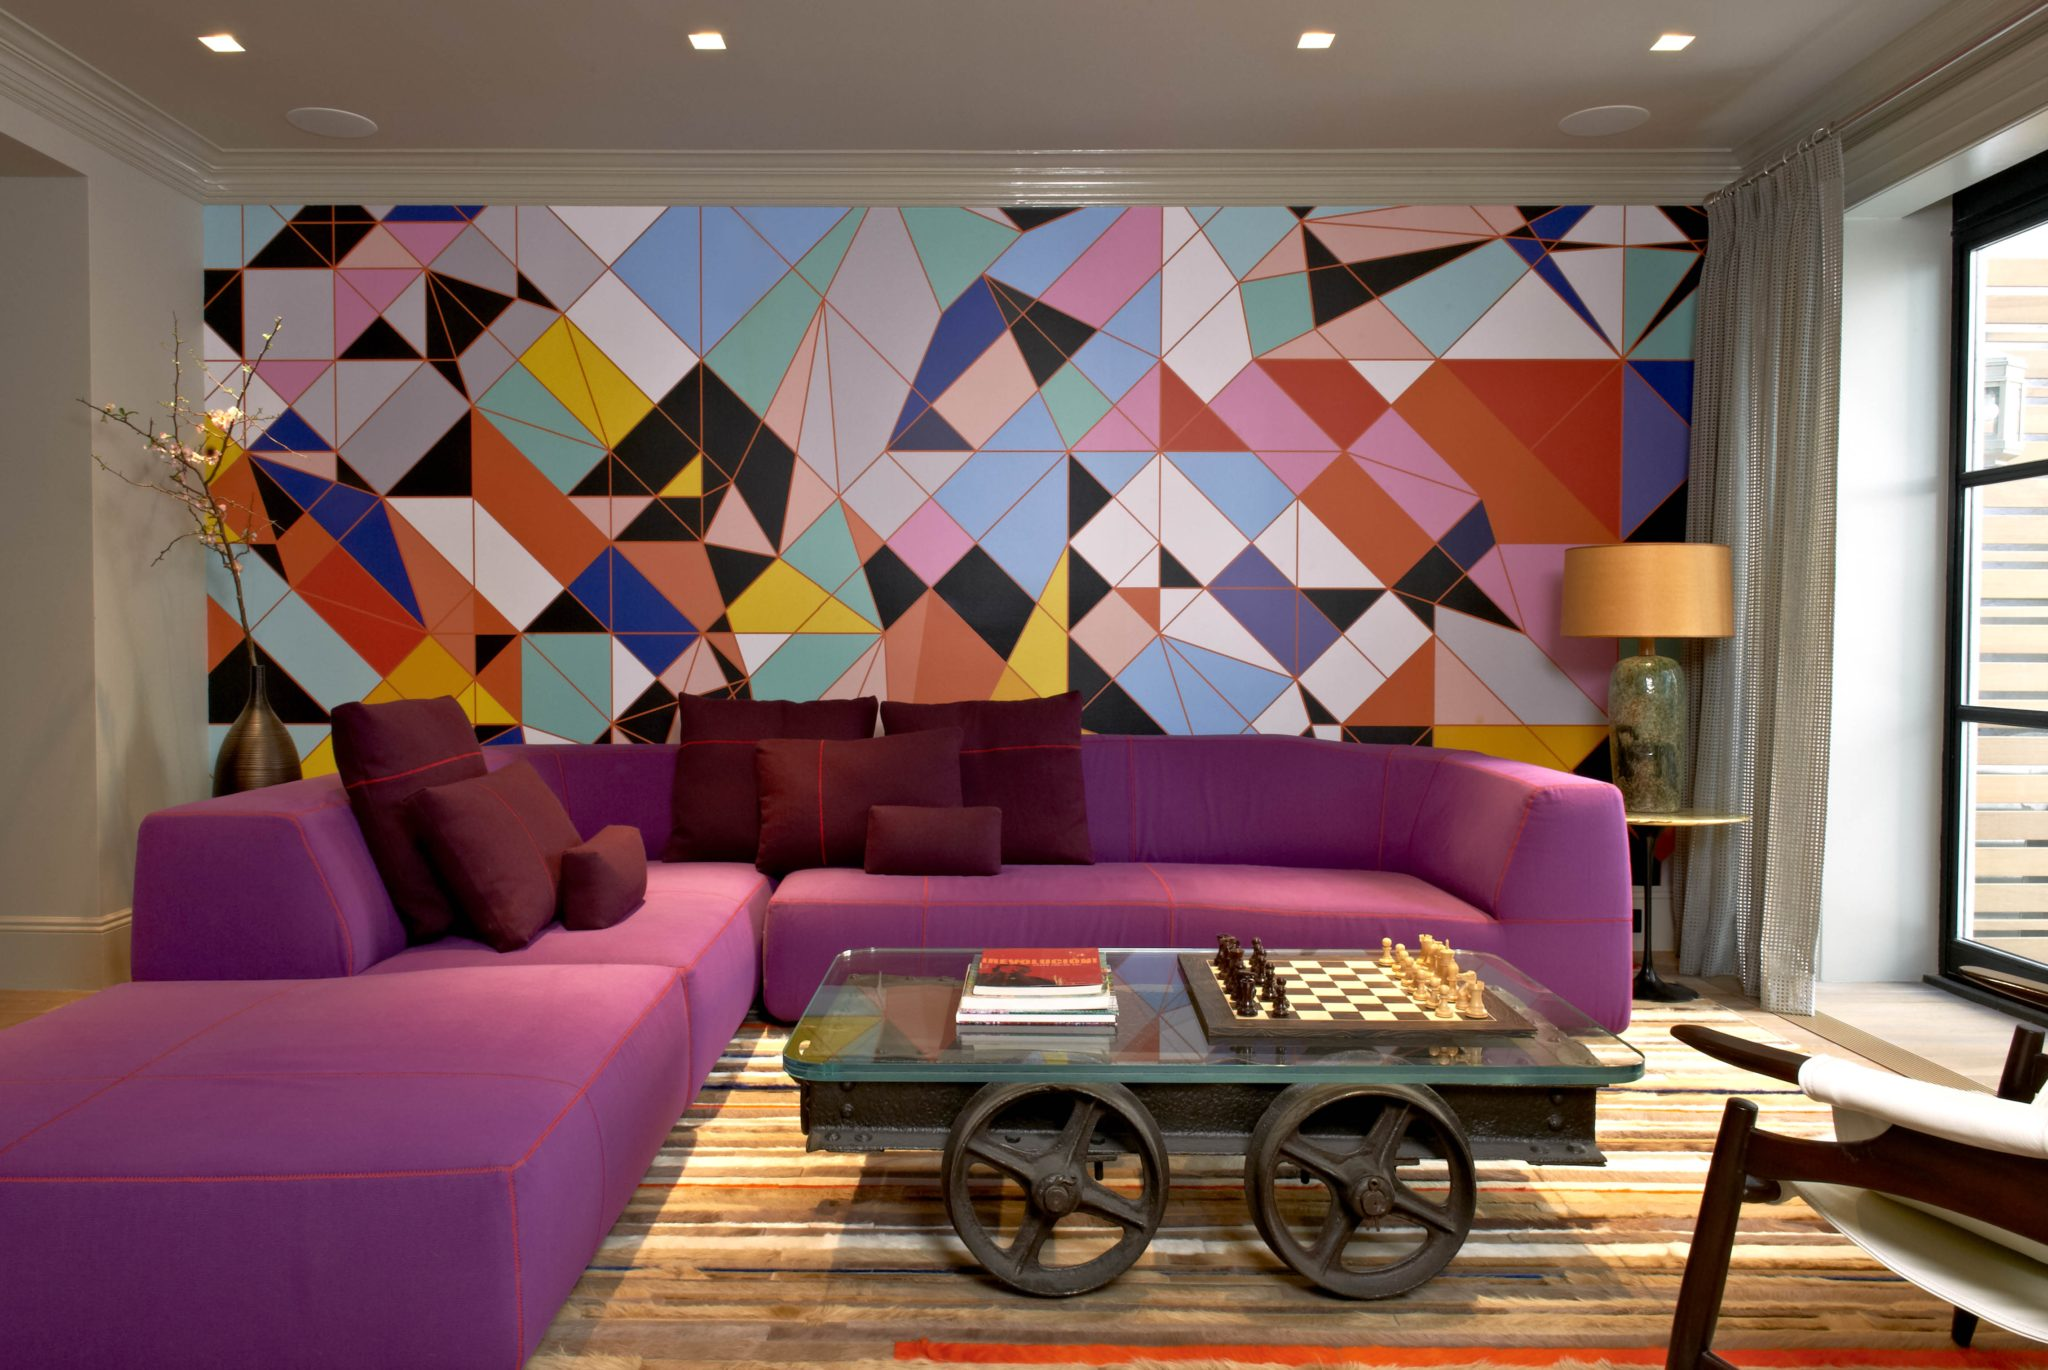 Park Slope Contemporary Interiors with Mohair sofa and Sarah Morris wallpaper by InSpace NY Design